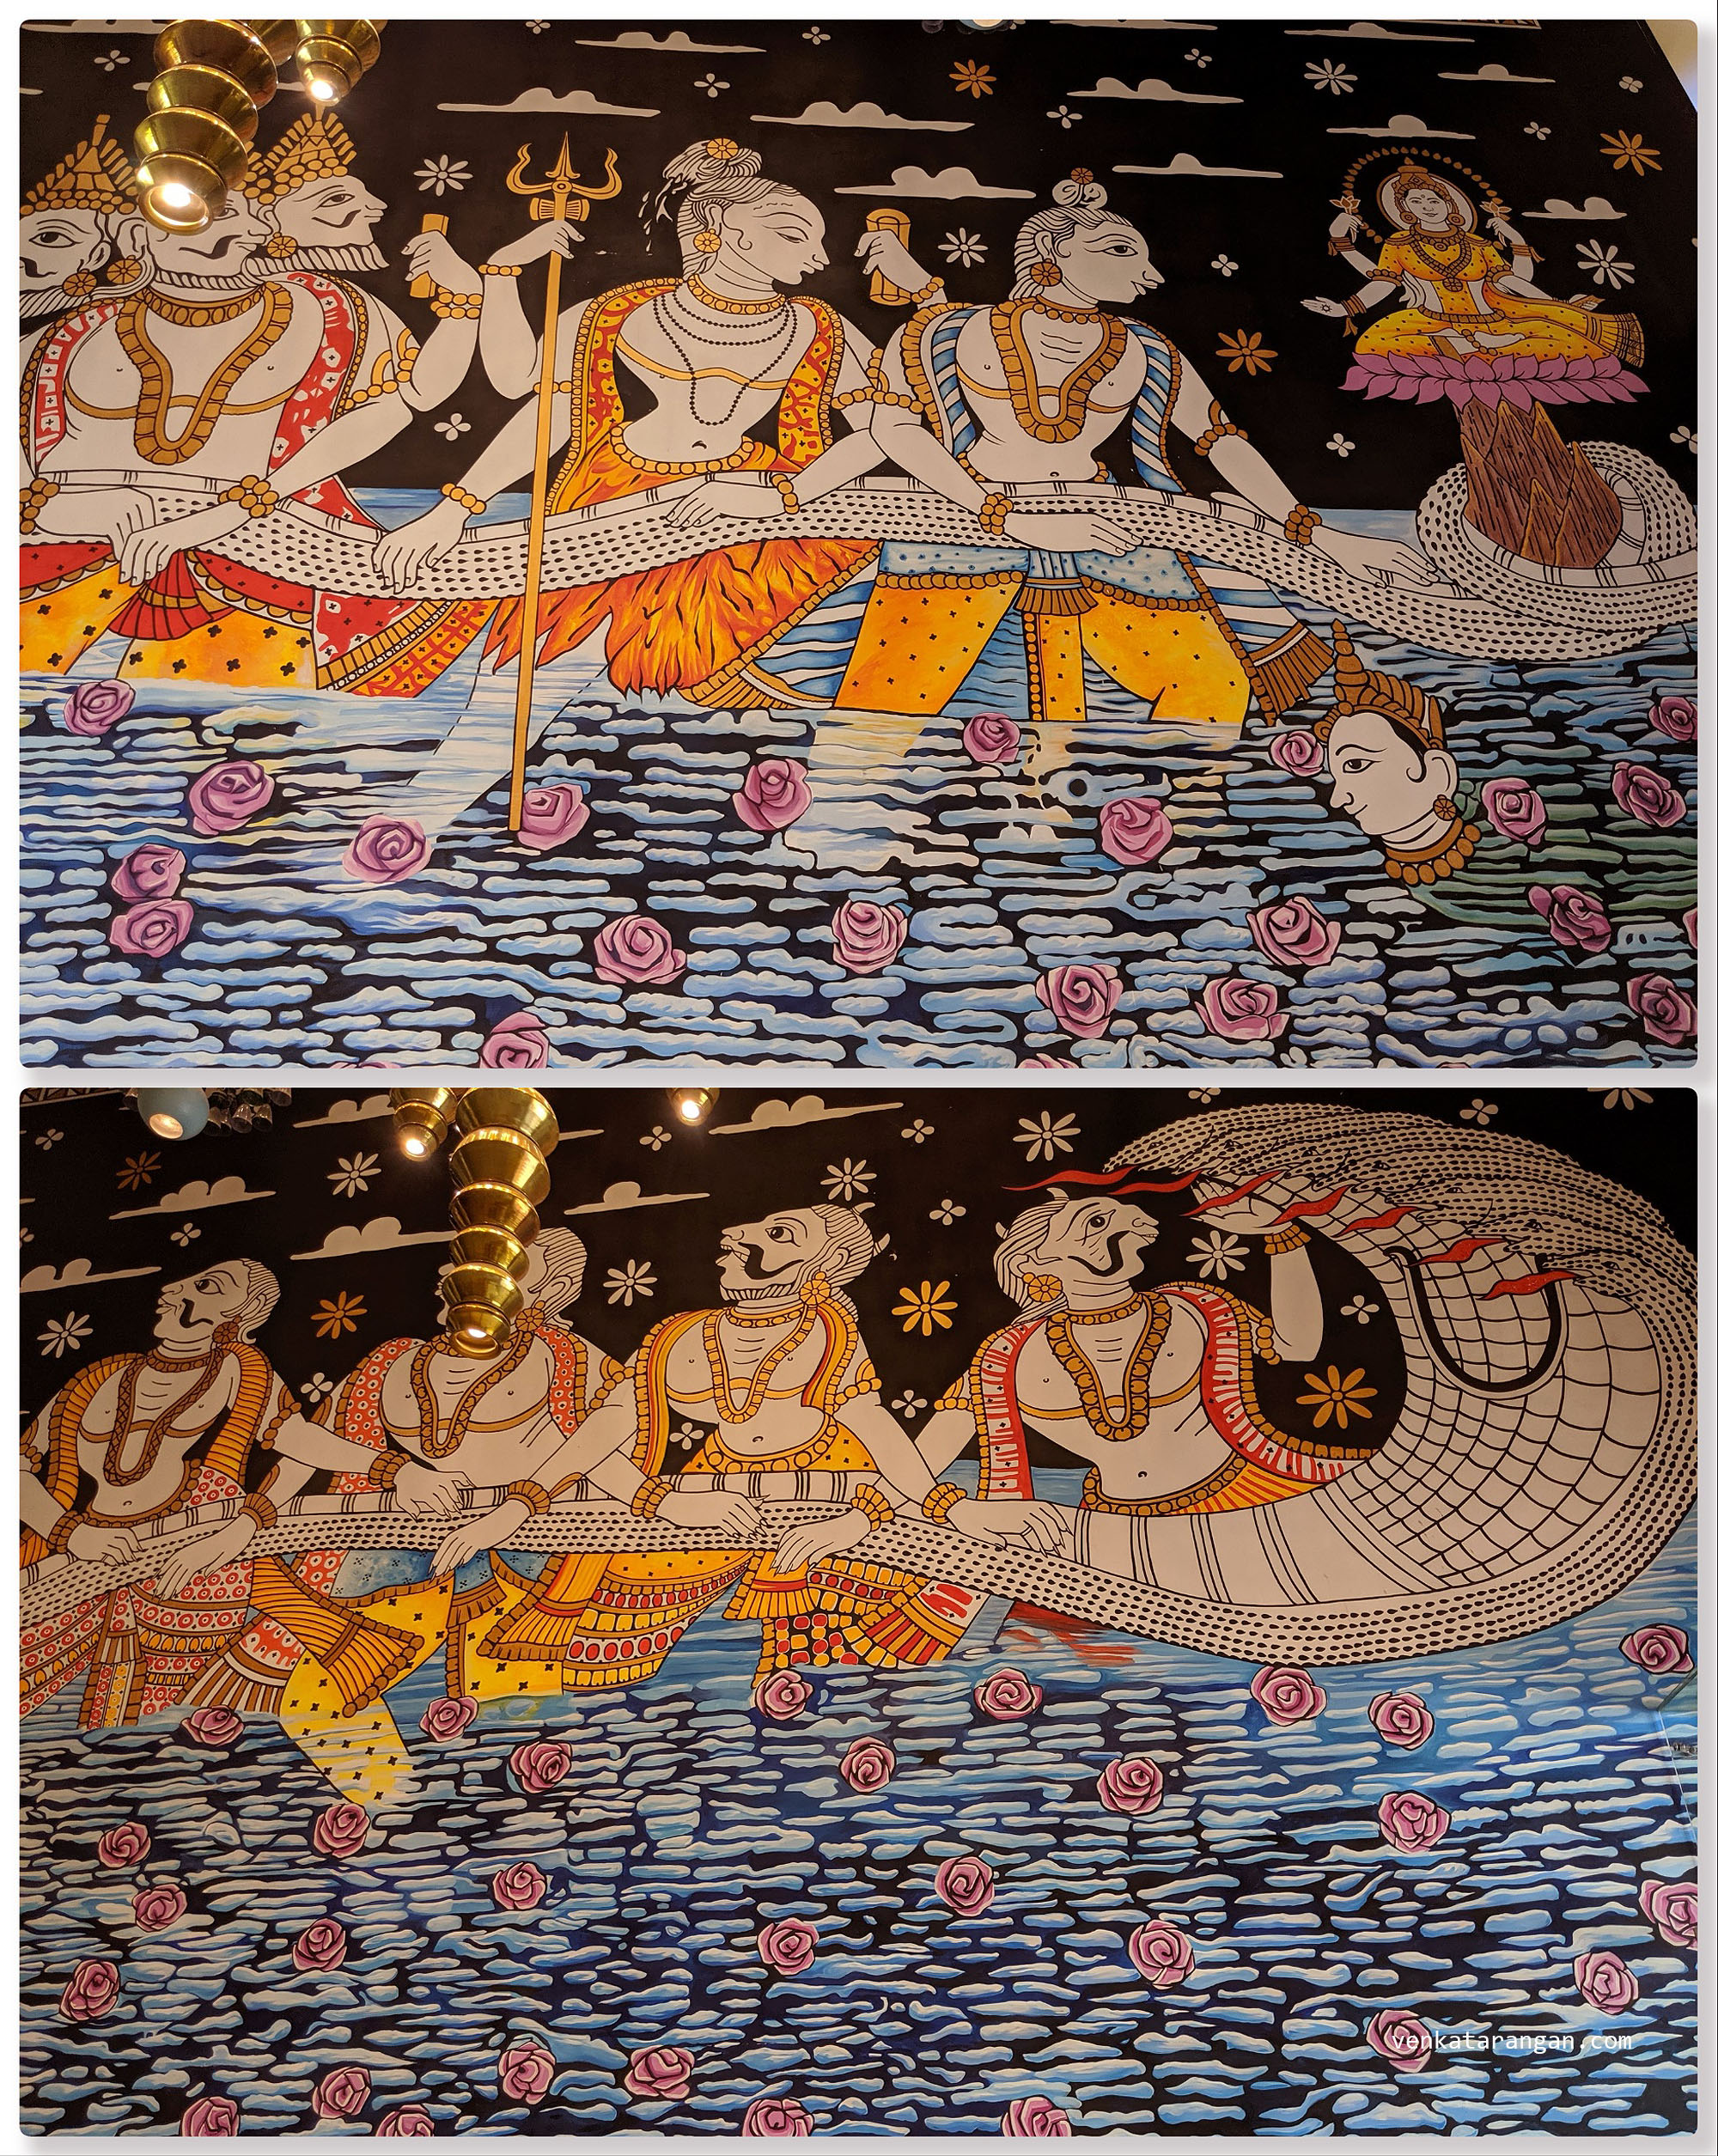 Dasavaratharam - 2. The Kurma can be seen near a water stream and in this painting that shows the act of Samudra Manthan that involved churning of cosmic ocean in the search for Amrut (the nectar of immortality)